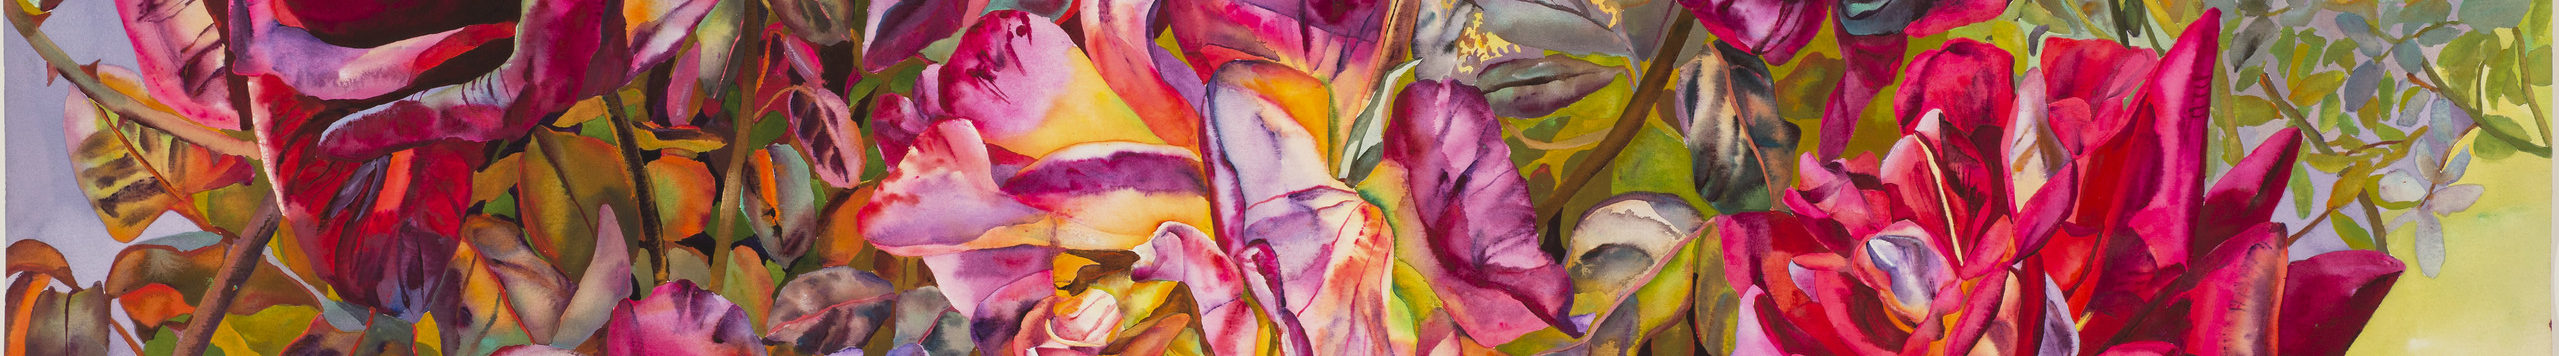 Long and thin horizontal crop of a larger artwork features a closeup detail of watercolor roses in vibrant bloom in shades of hot pink, violet, and yellow with thick leaves surrounding.